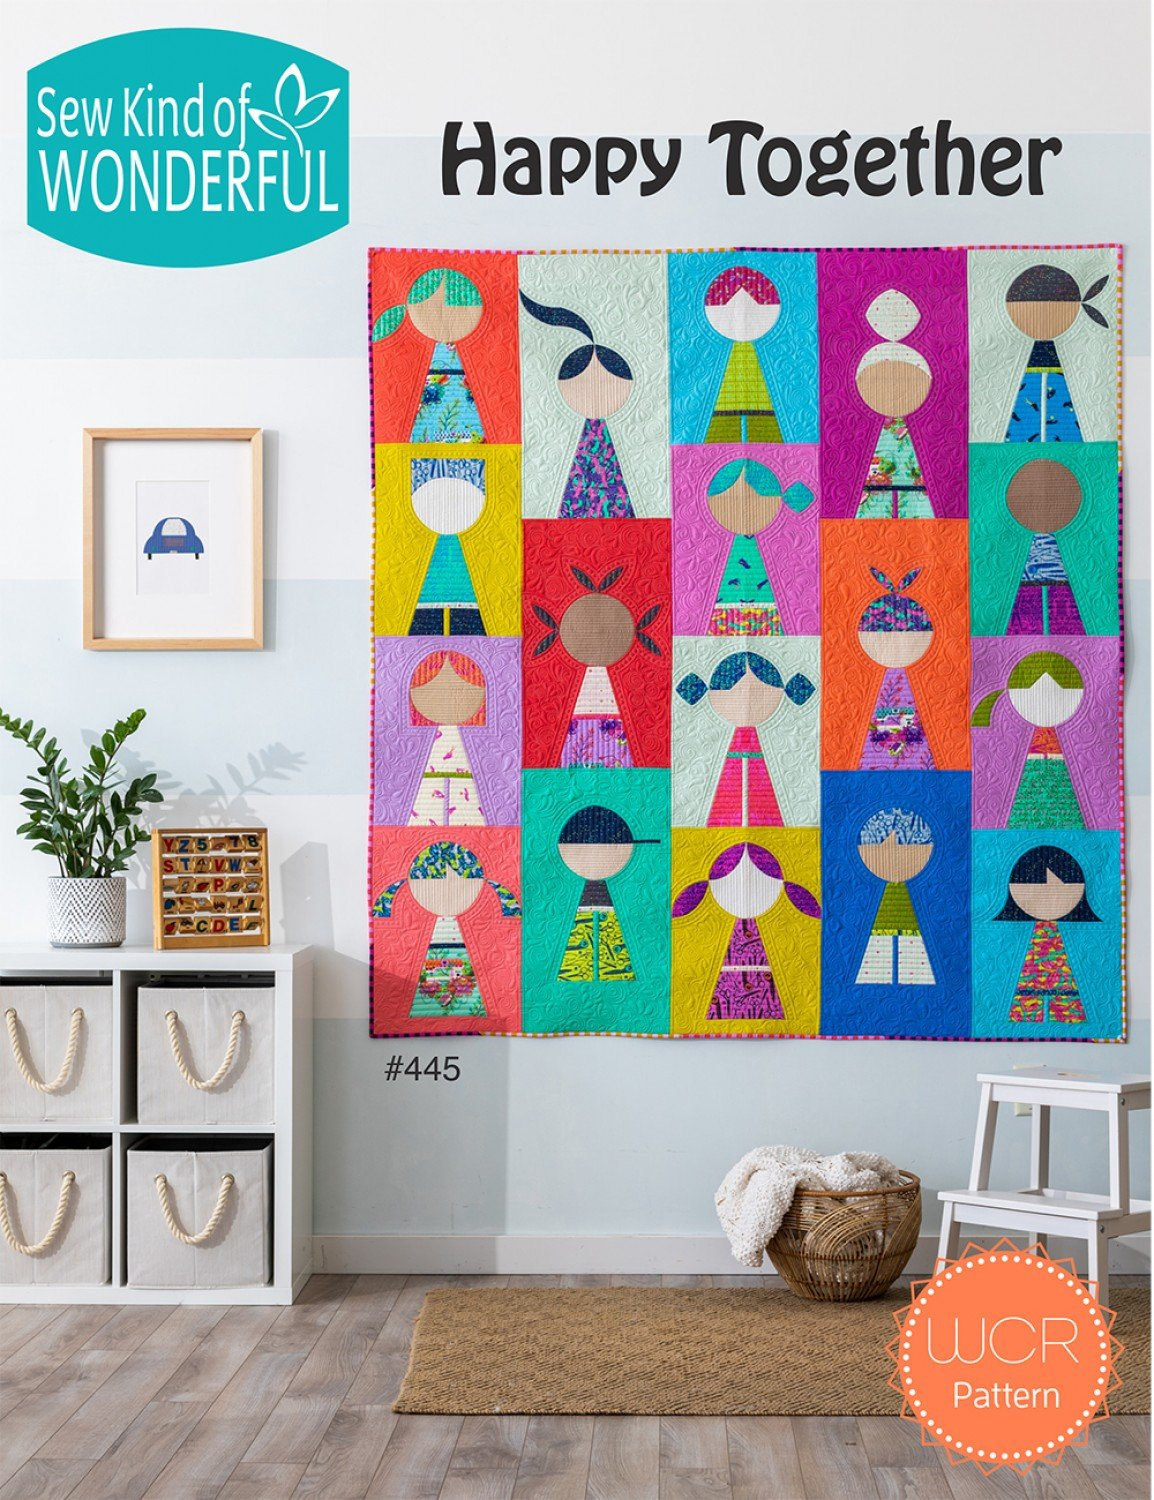 Happy Together Quilt Pattern | Sew Kind of Wonderful